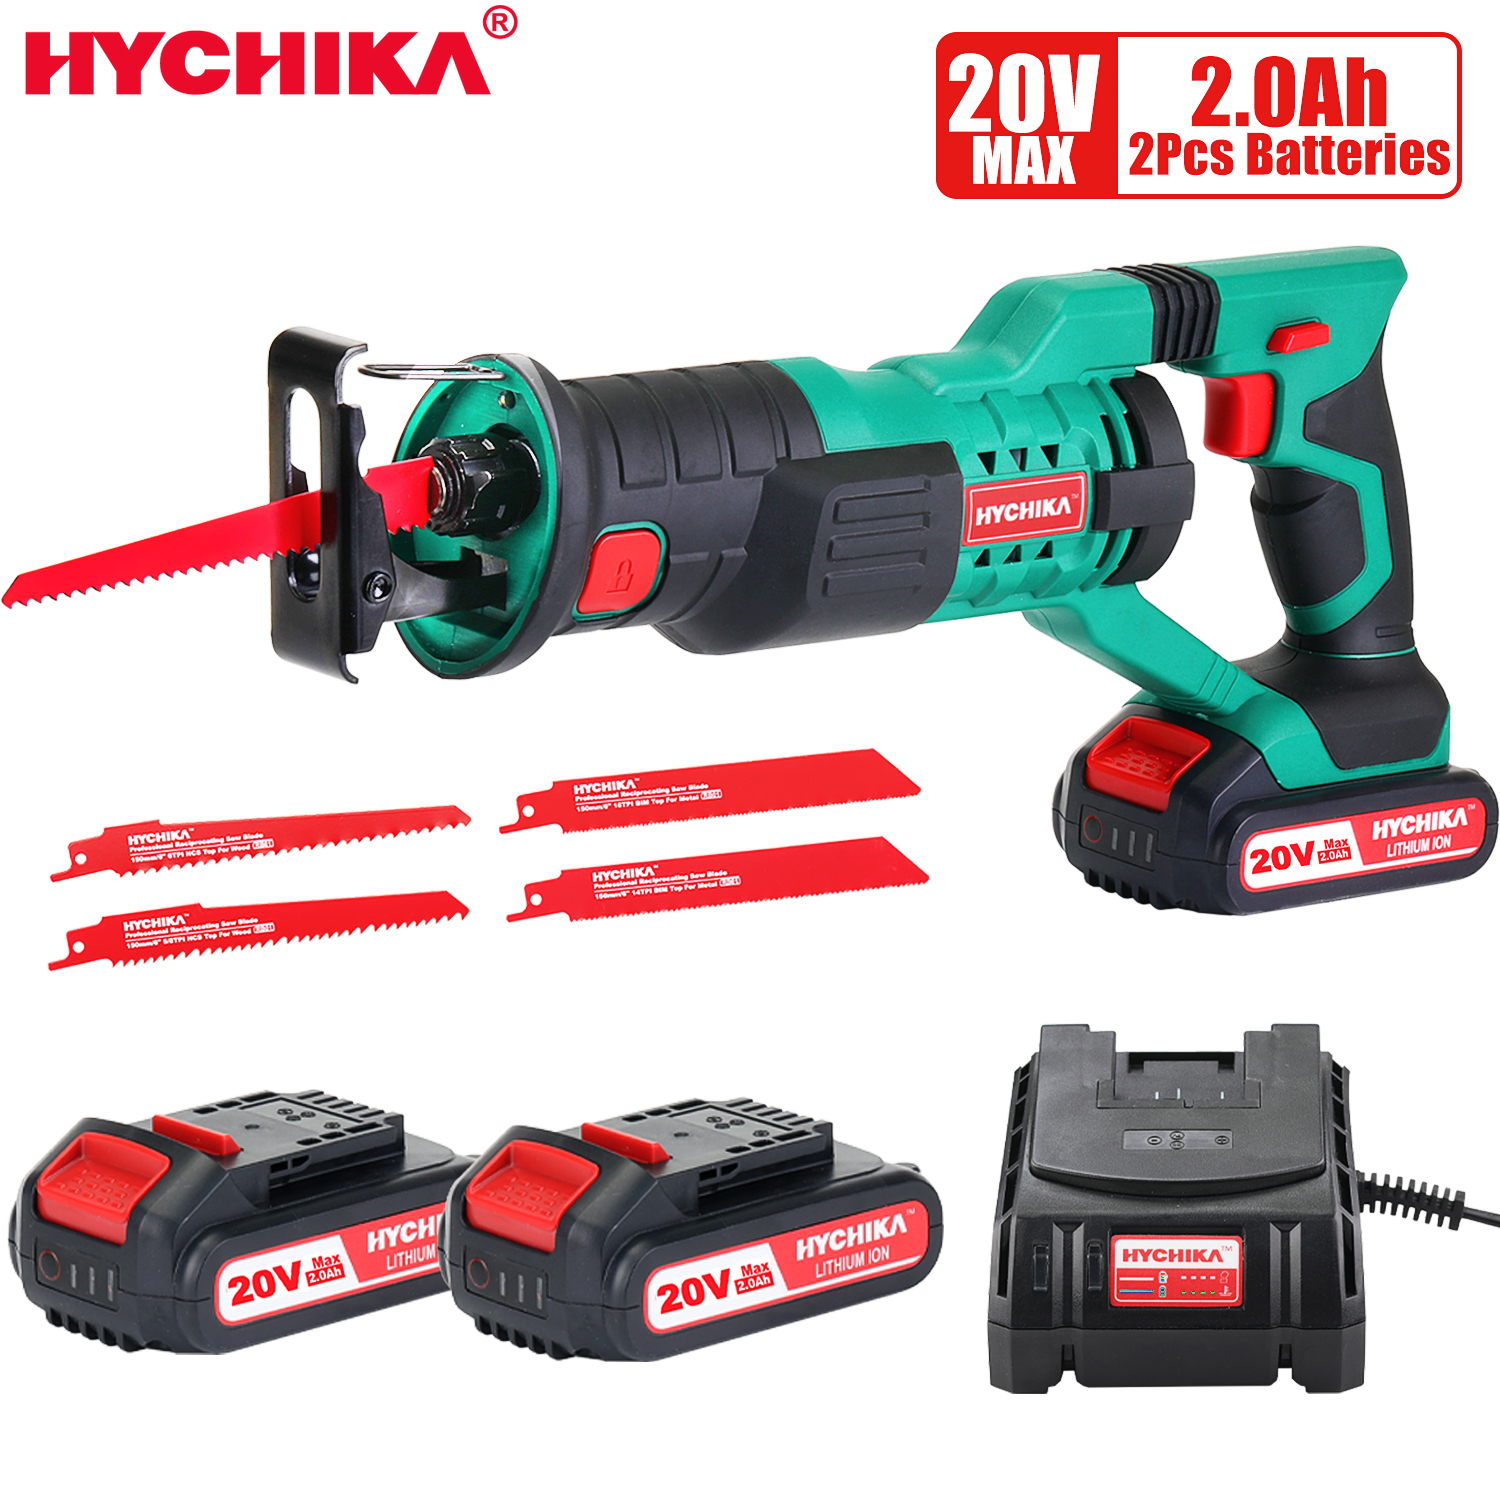 HYCHIKA 20V Cordless Reciprocating Saw Multifunction Electric Saw for metal wood meat bone pipe cutting saw with blade kit